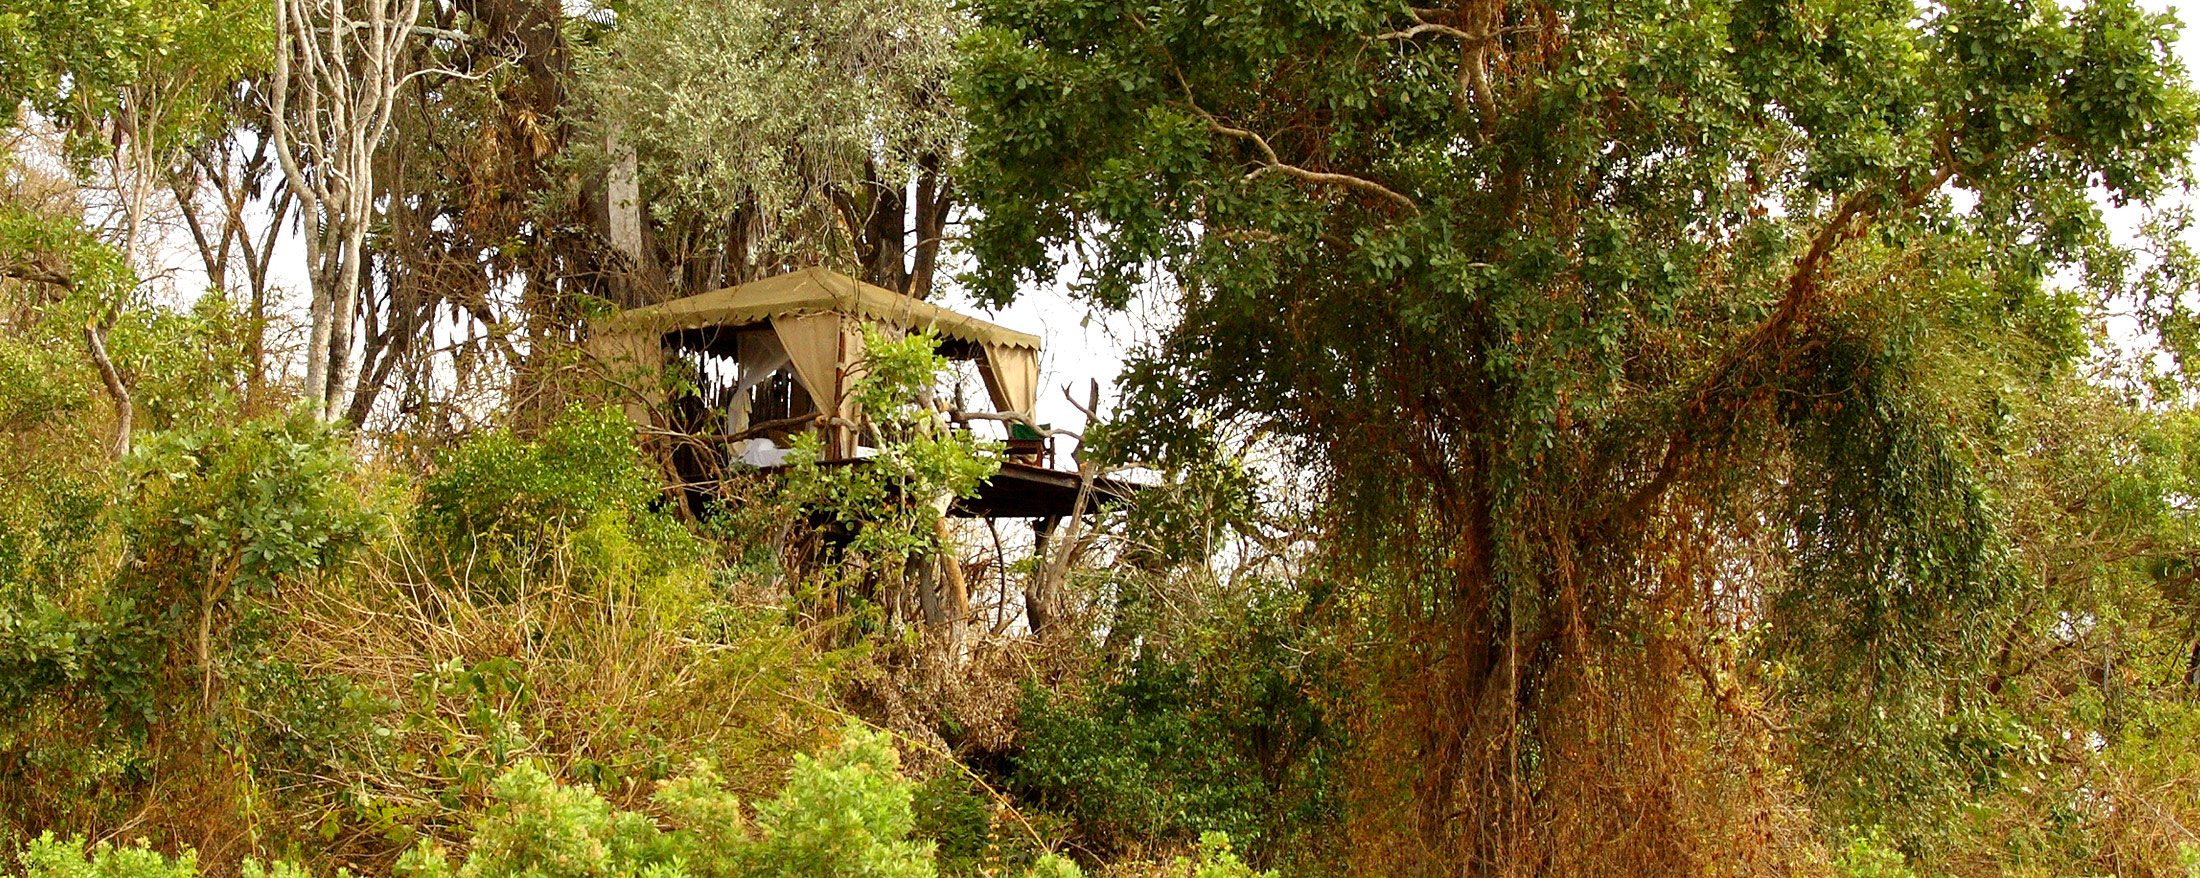 Sleeping in a Selous treehouse will add an unforgettable dimension to your luxury Tanzanian safari.